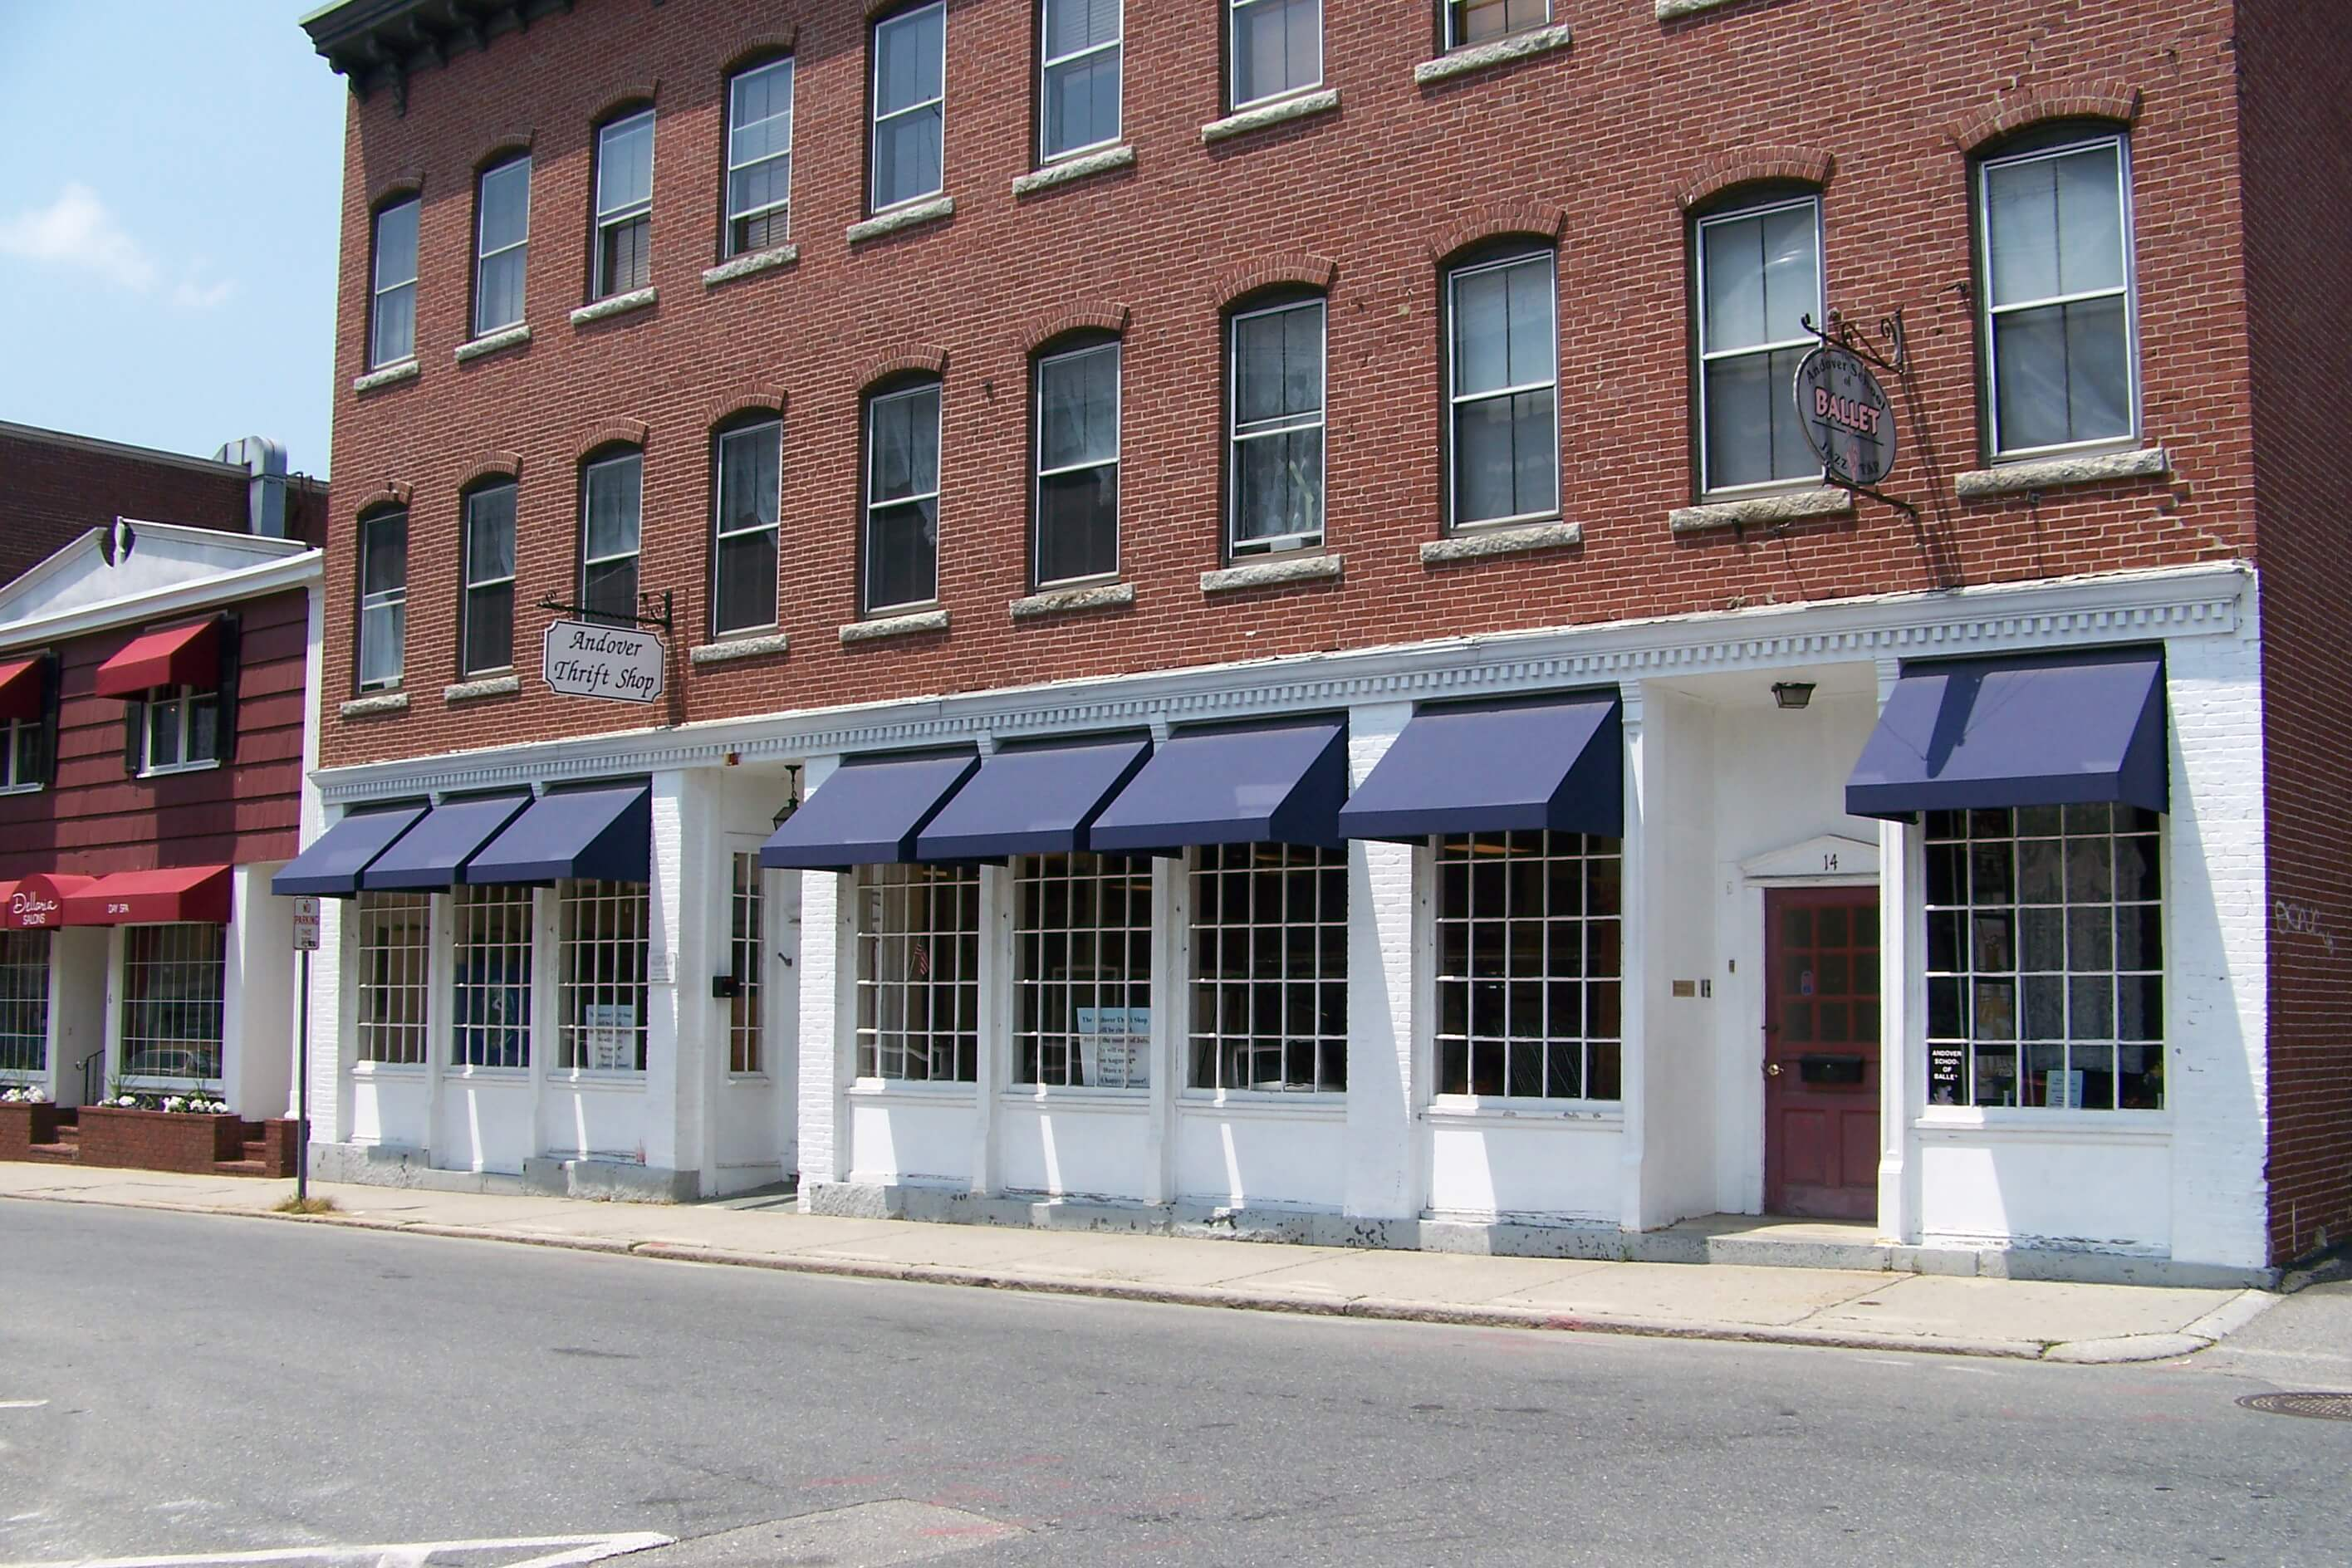 Custom Awning Company in Andover, MA